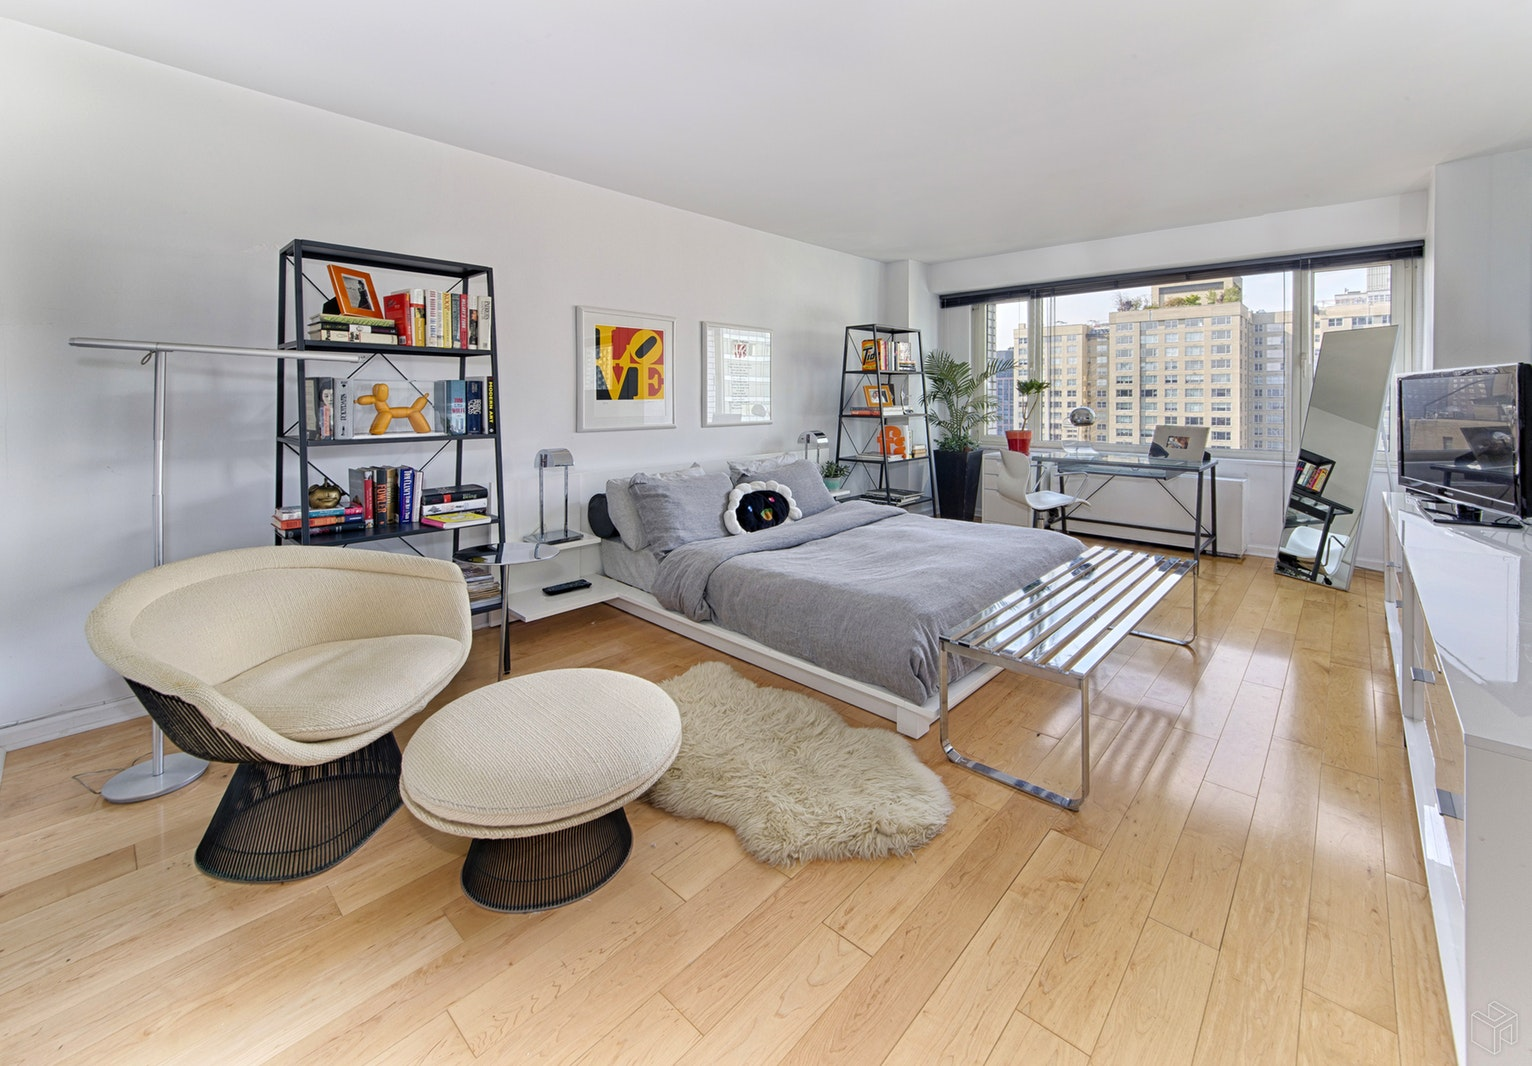 303 East 57th Street 25b, Midtown East, NYC, 10022, $690,000, Property For Sale, Halstead Real Estate, Photo 6